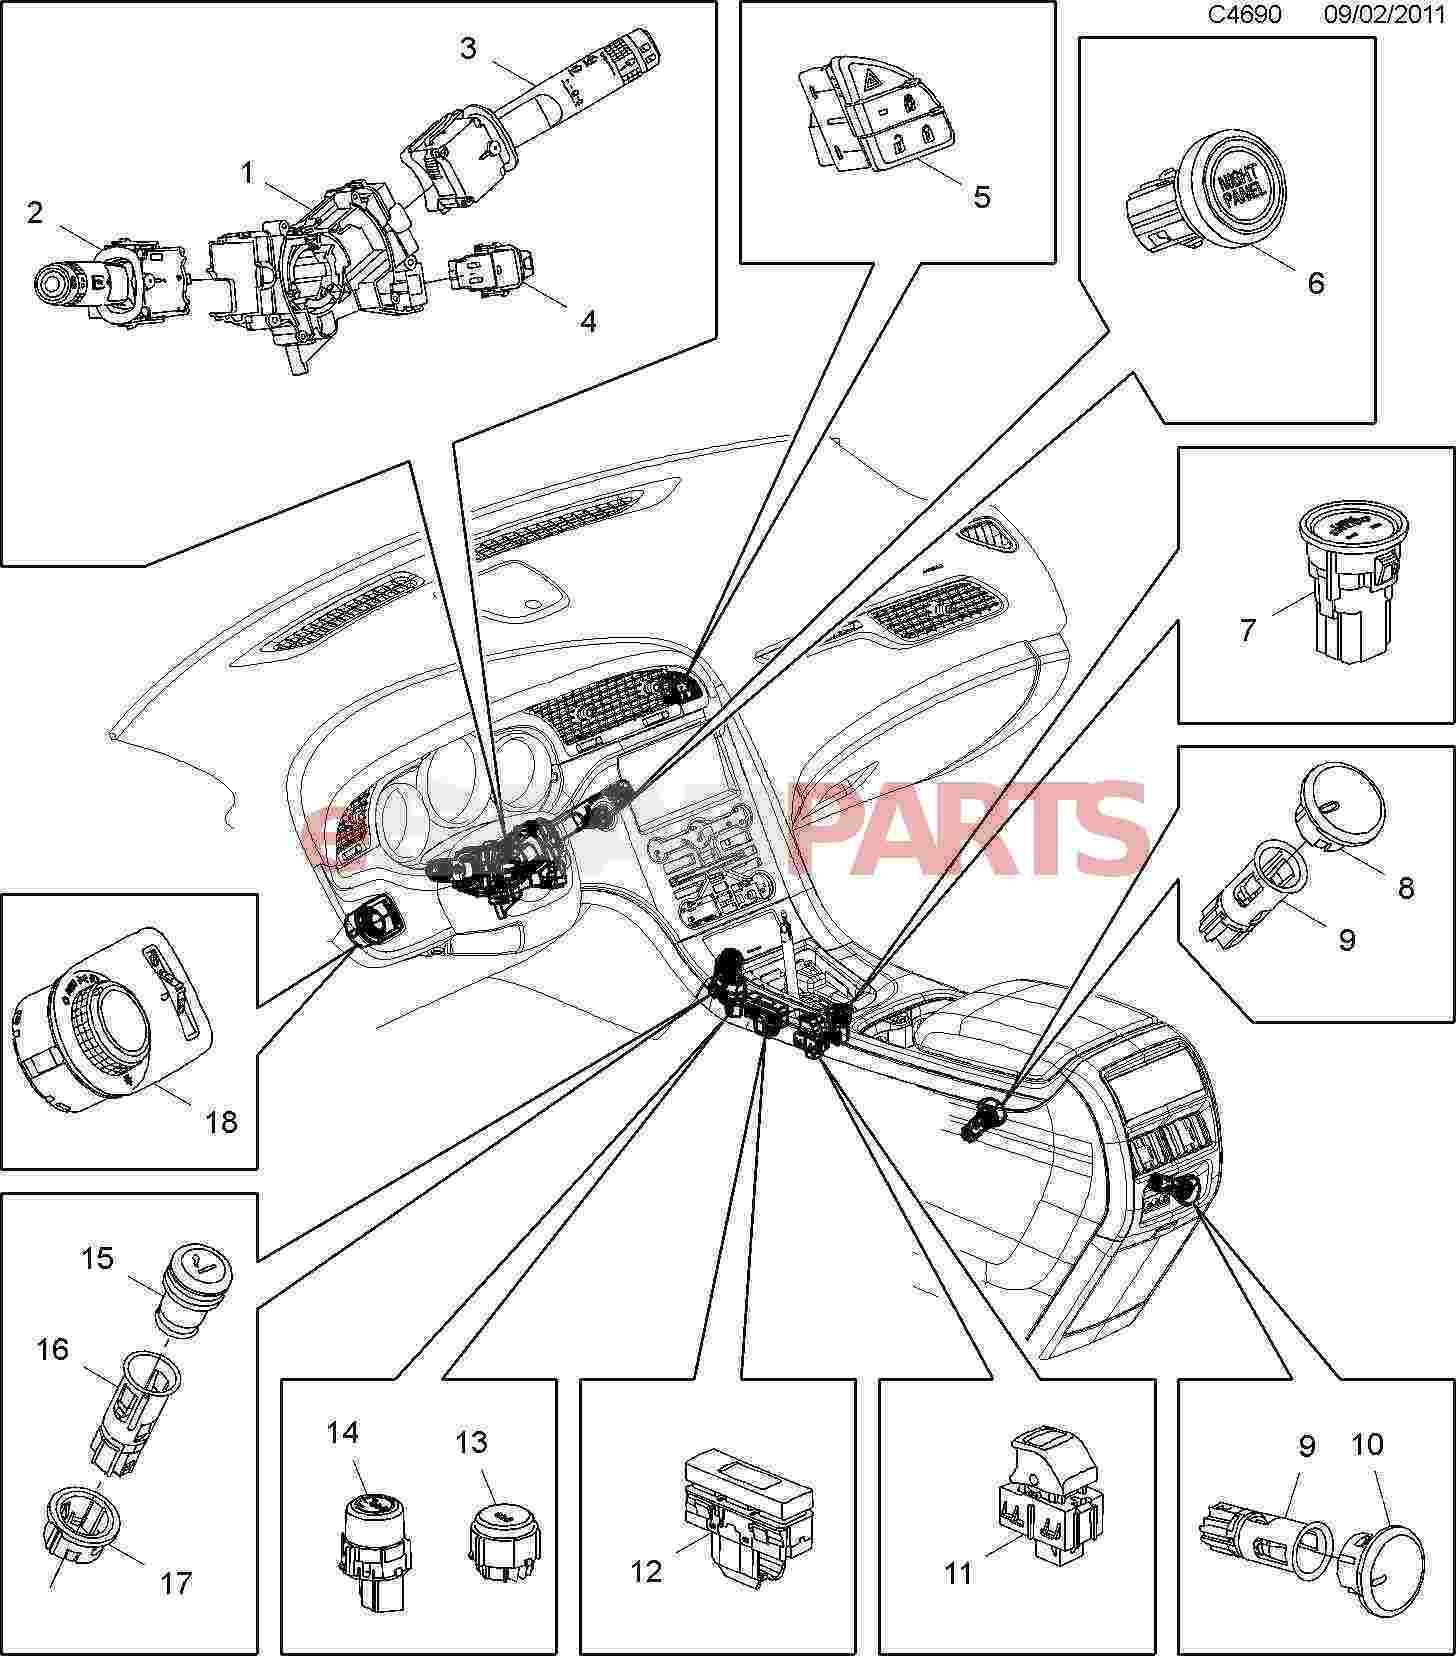 Cigarette Lighter Receptacle Wiring Diagram